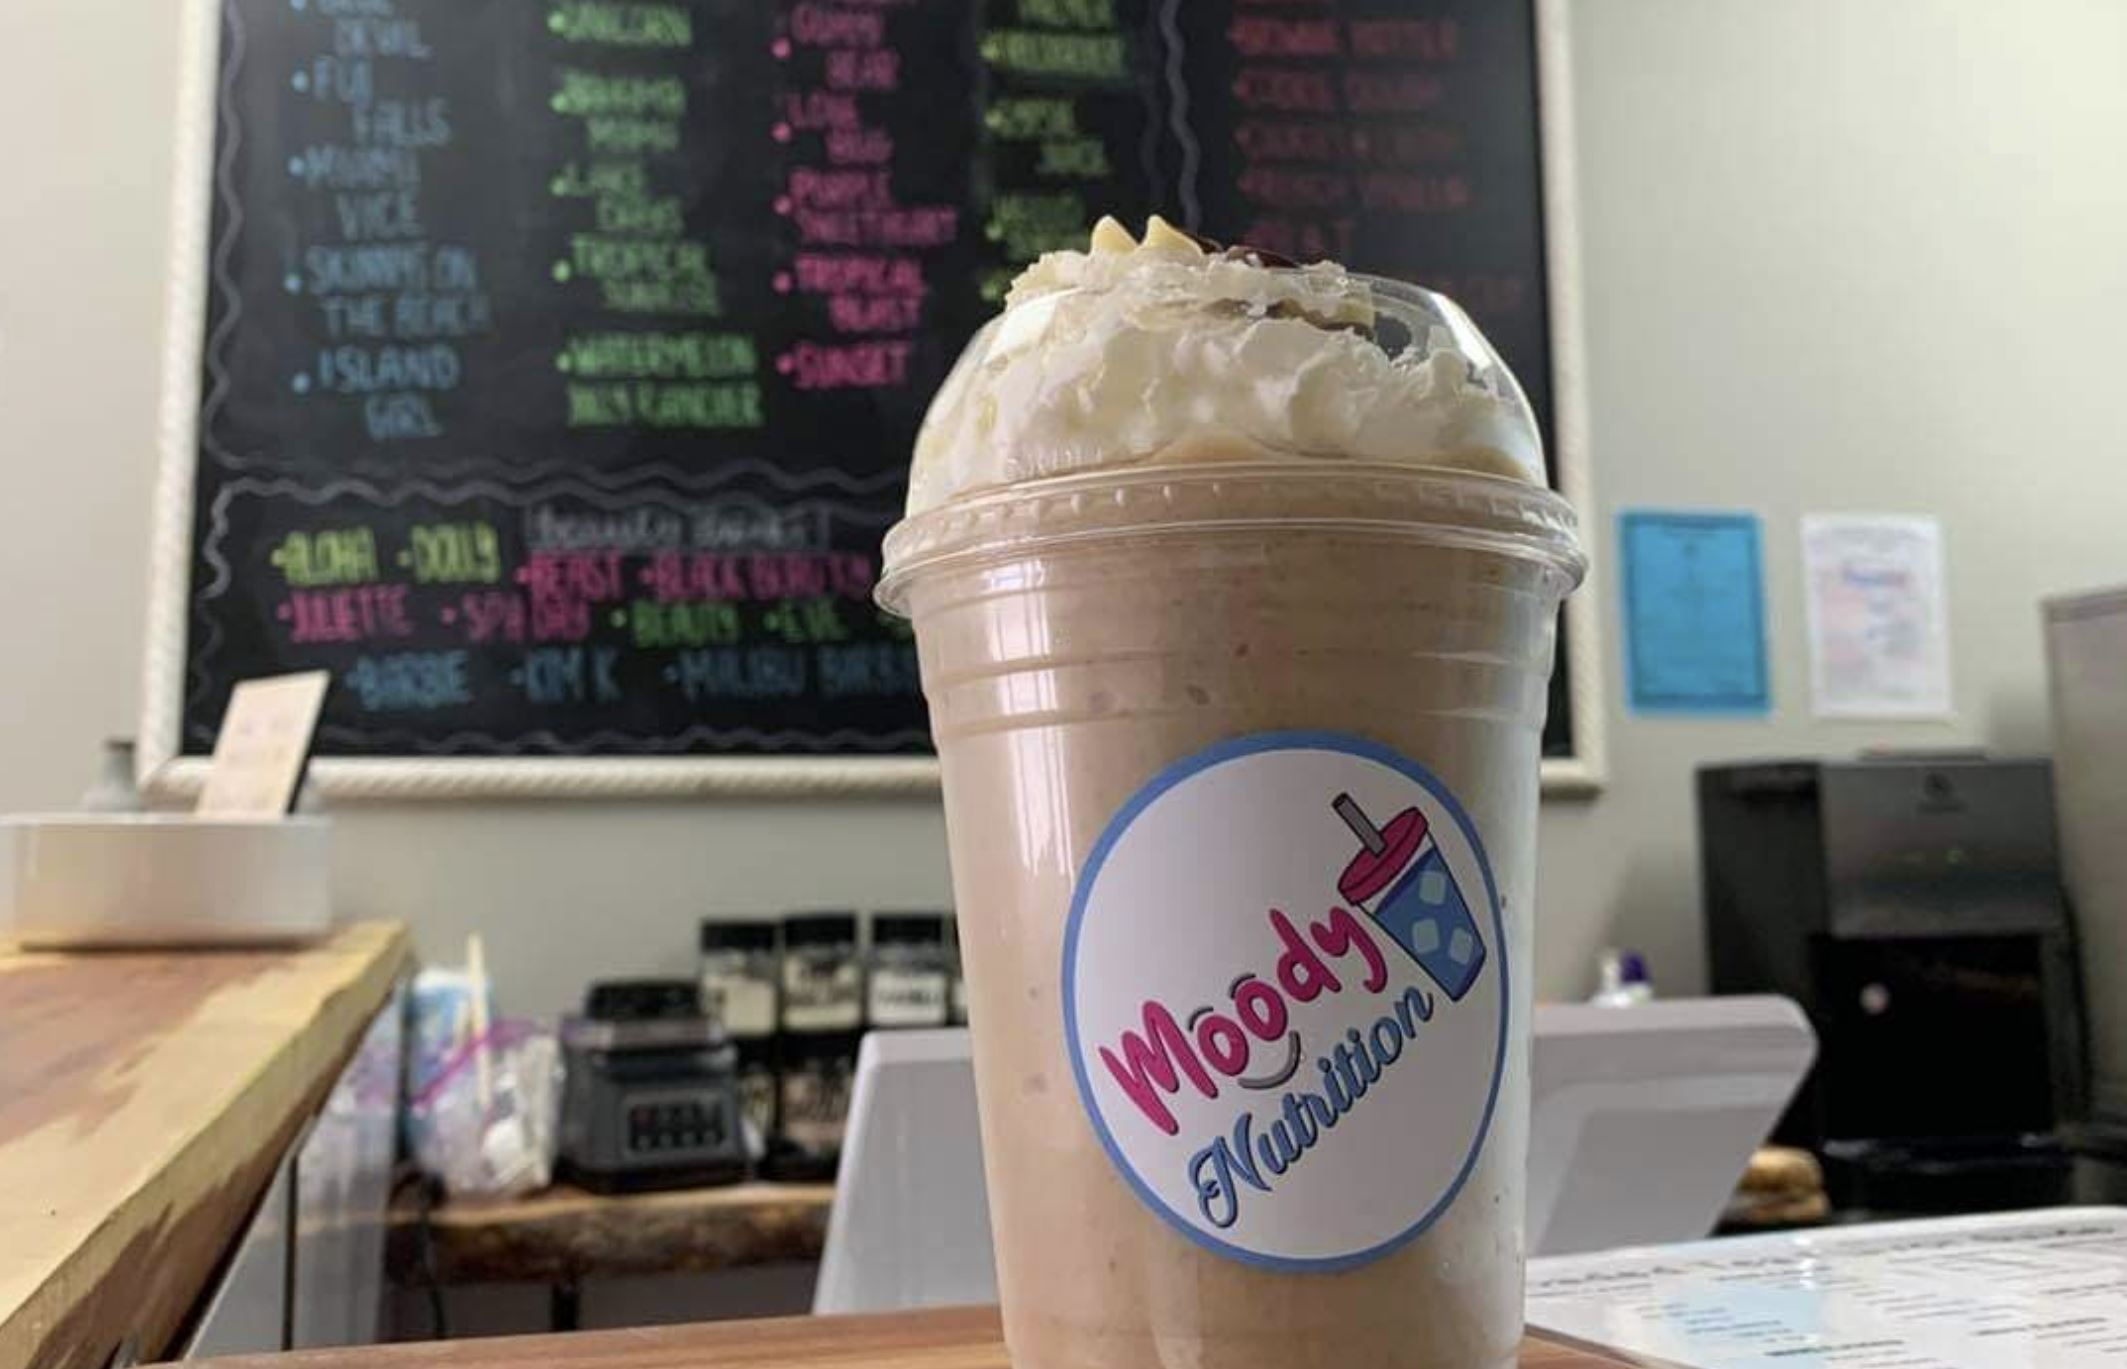 Moody Nutrition now open, offering teas and shakes